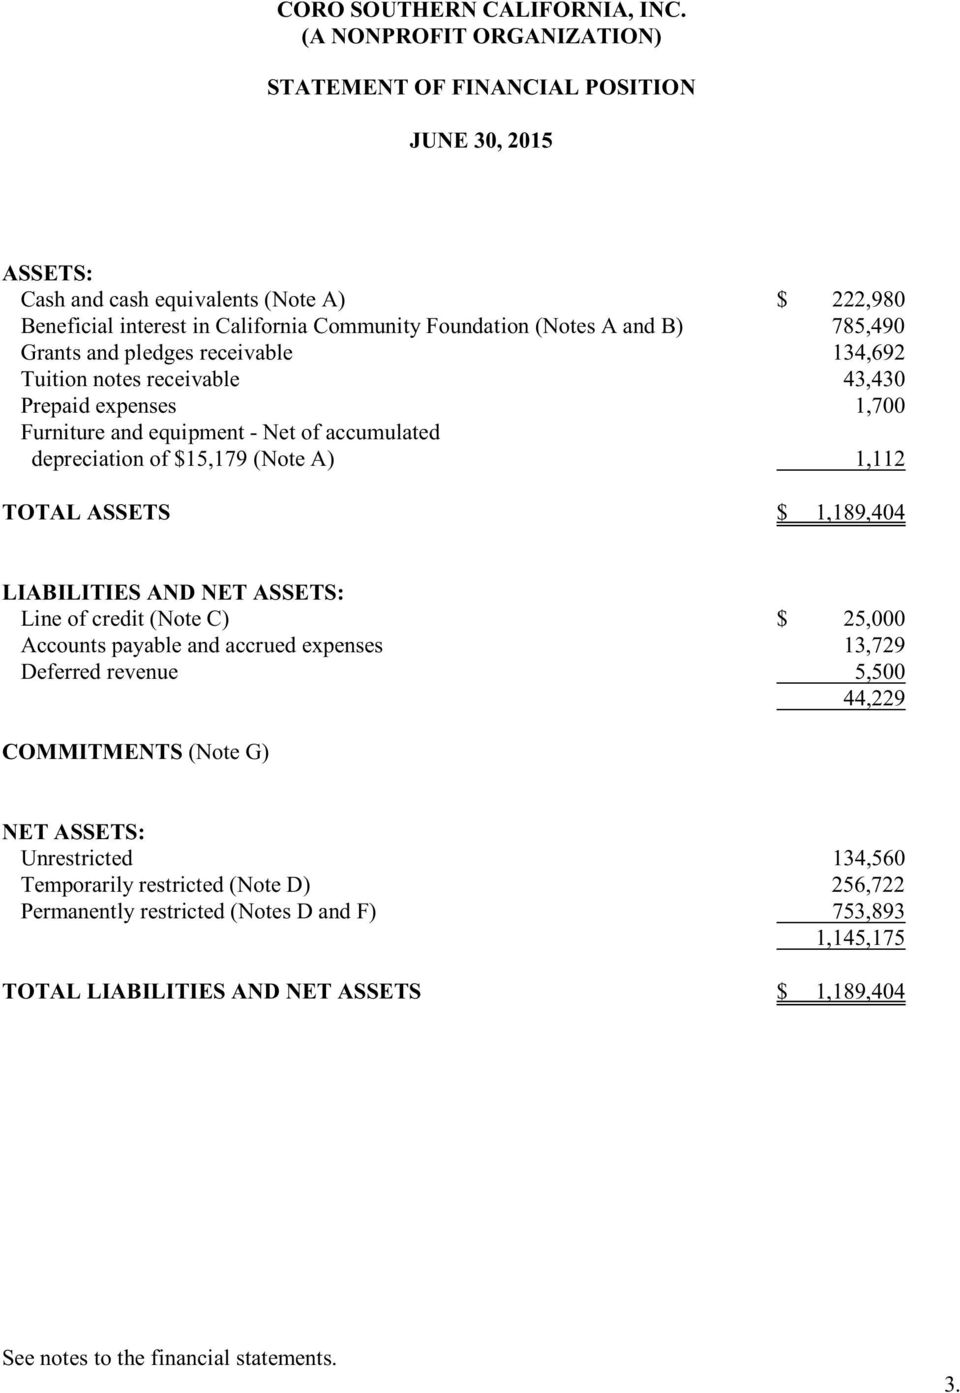 LIABILITIES AND NET ASSETS: Line of credit (Note C) $ 25,000 Accounts payable and accrued expenses 13,729 Deferred revenue 5,500 44,229 COMMITMENTS (Note G) NET ASSETS: Unrestricted